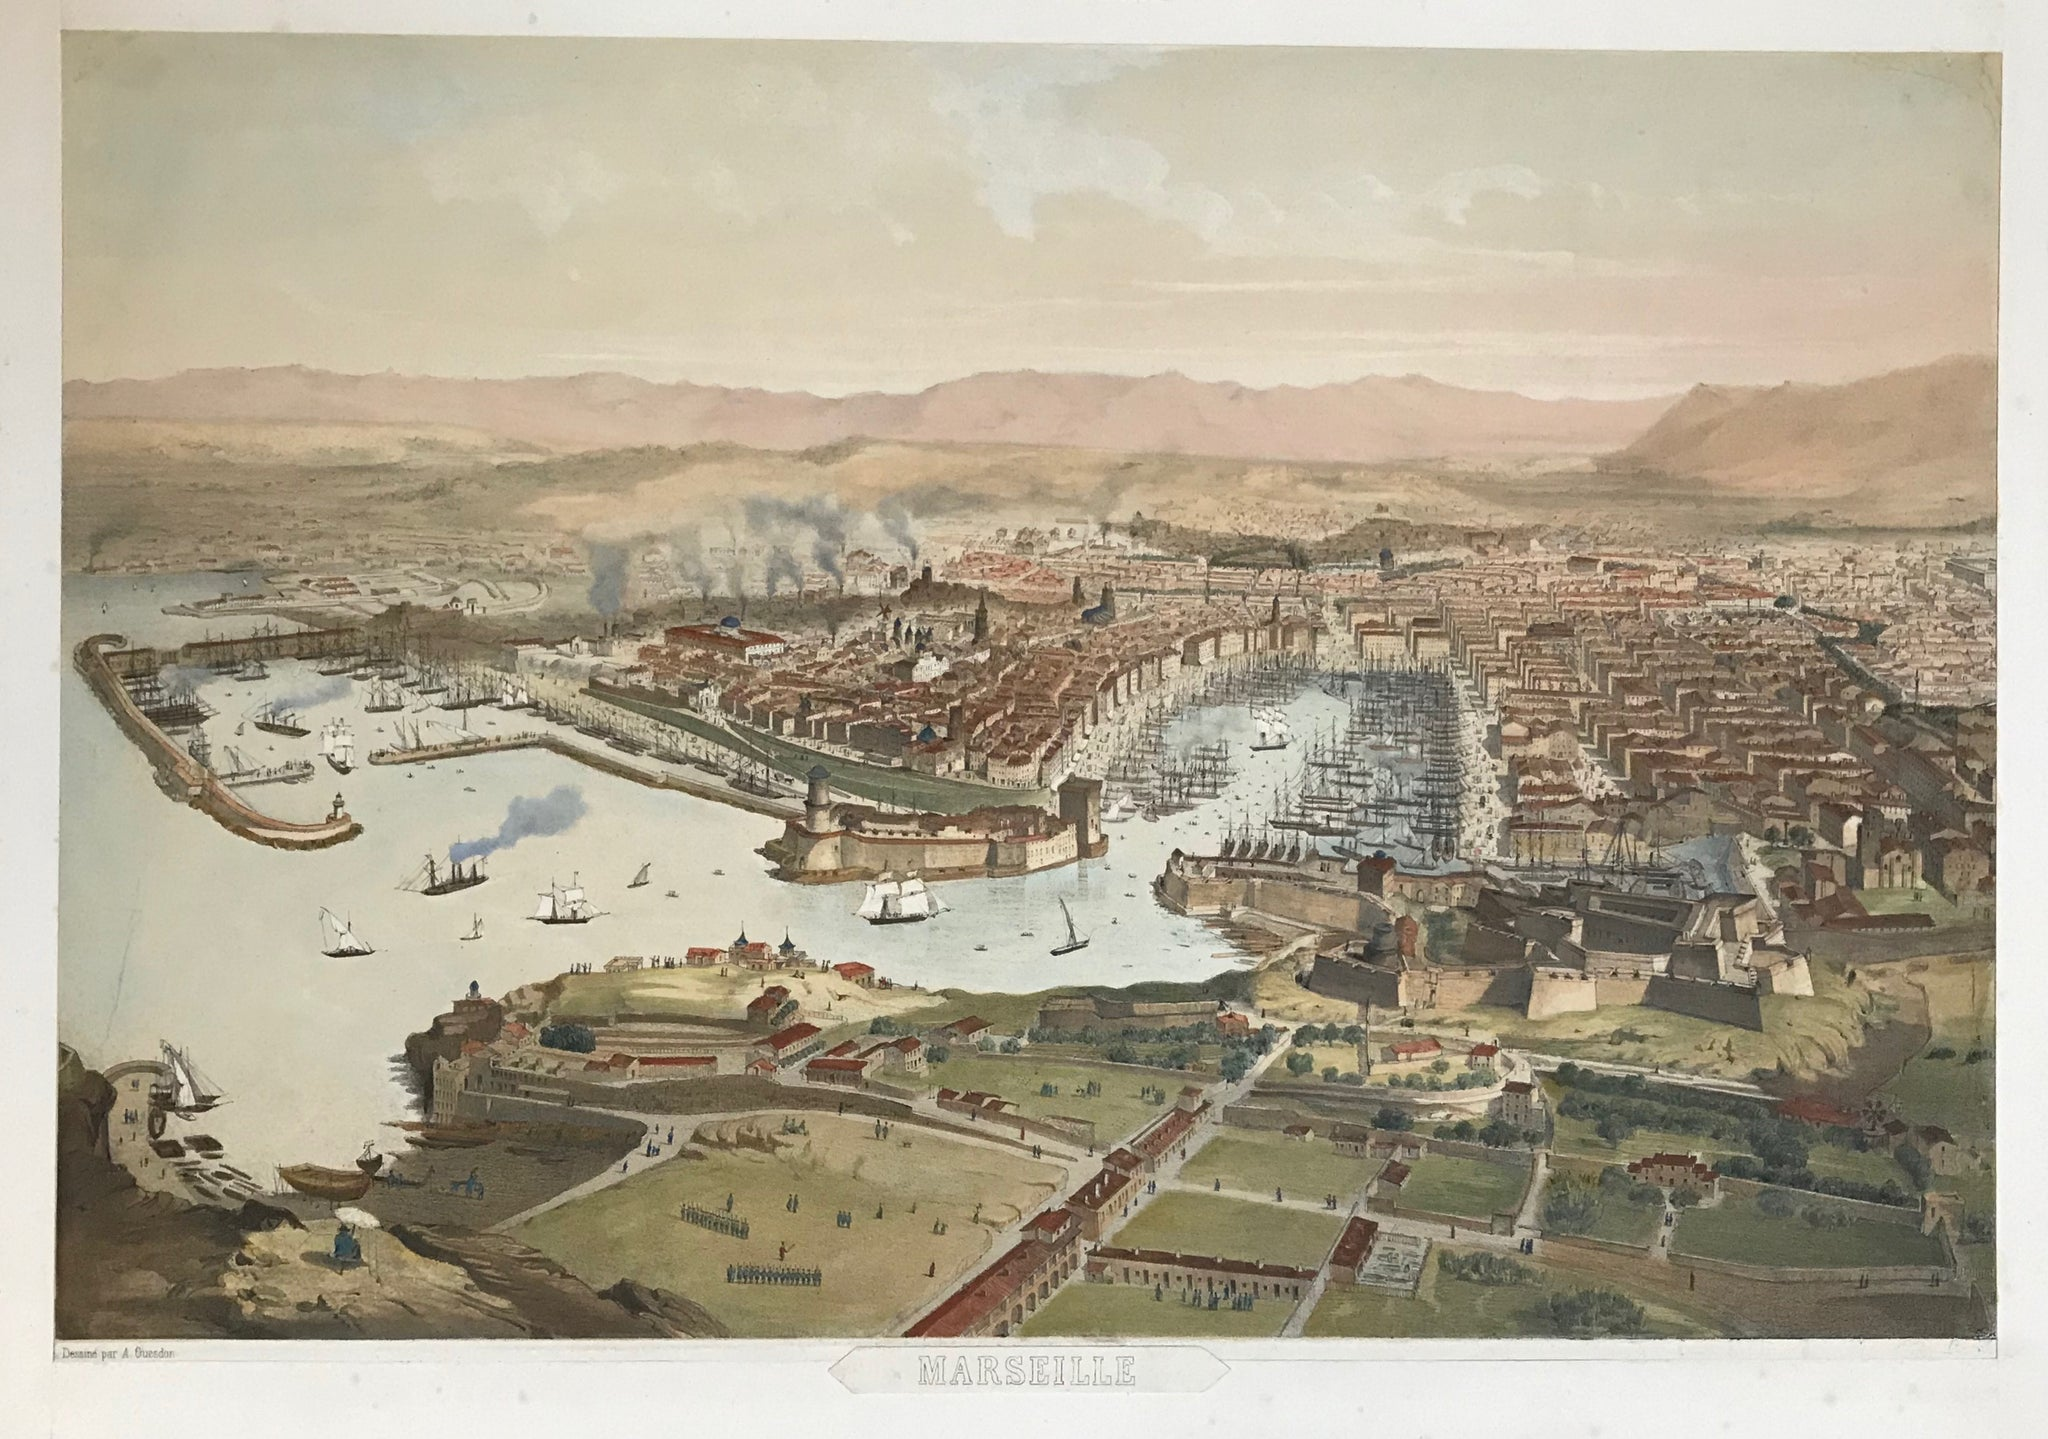 """Marseille"" (Vue des Catalans)  Lithograph Noury after Alfred Guesdon (1808-1876) published ca 1840. Attractive hand coloring."